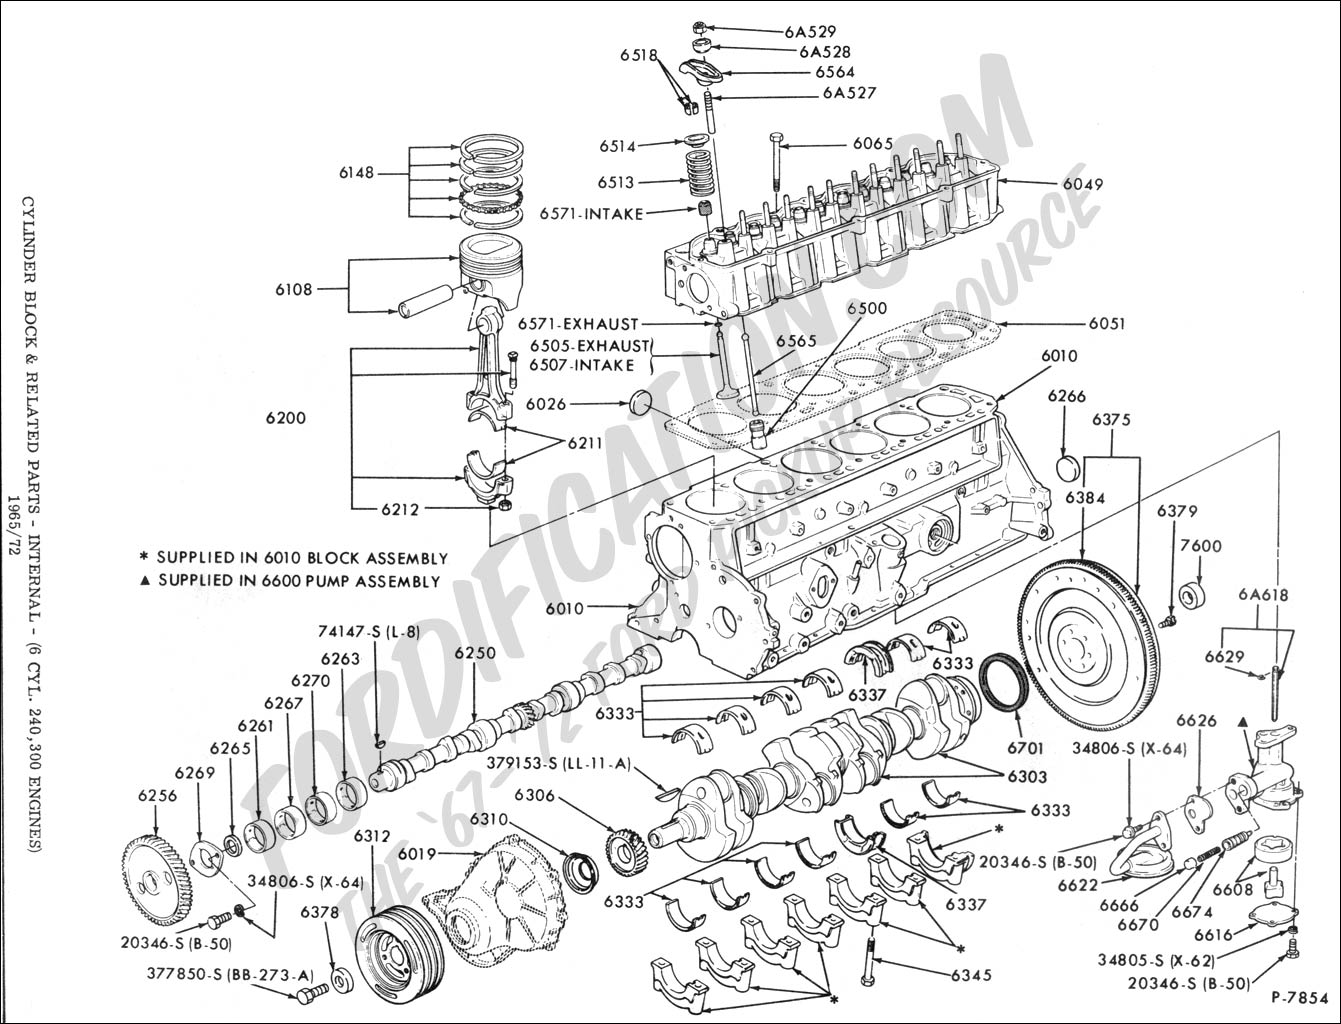 Car Engine Drivetrain Schematic